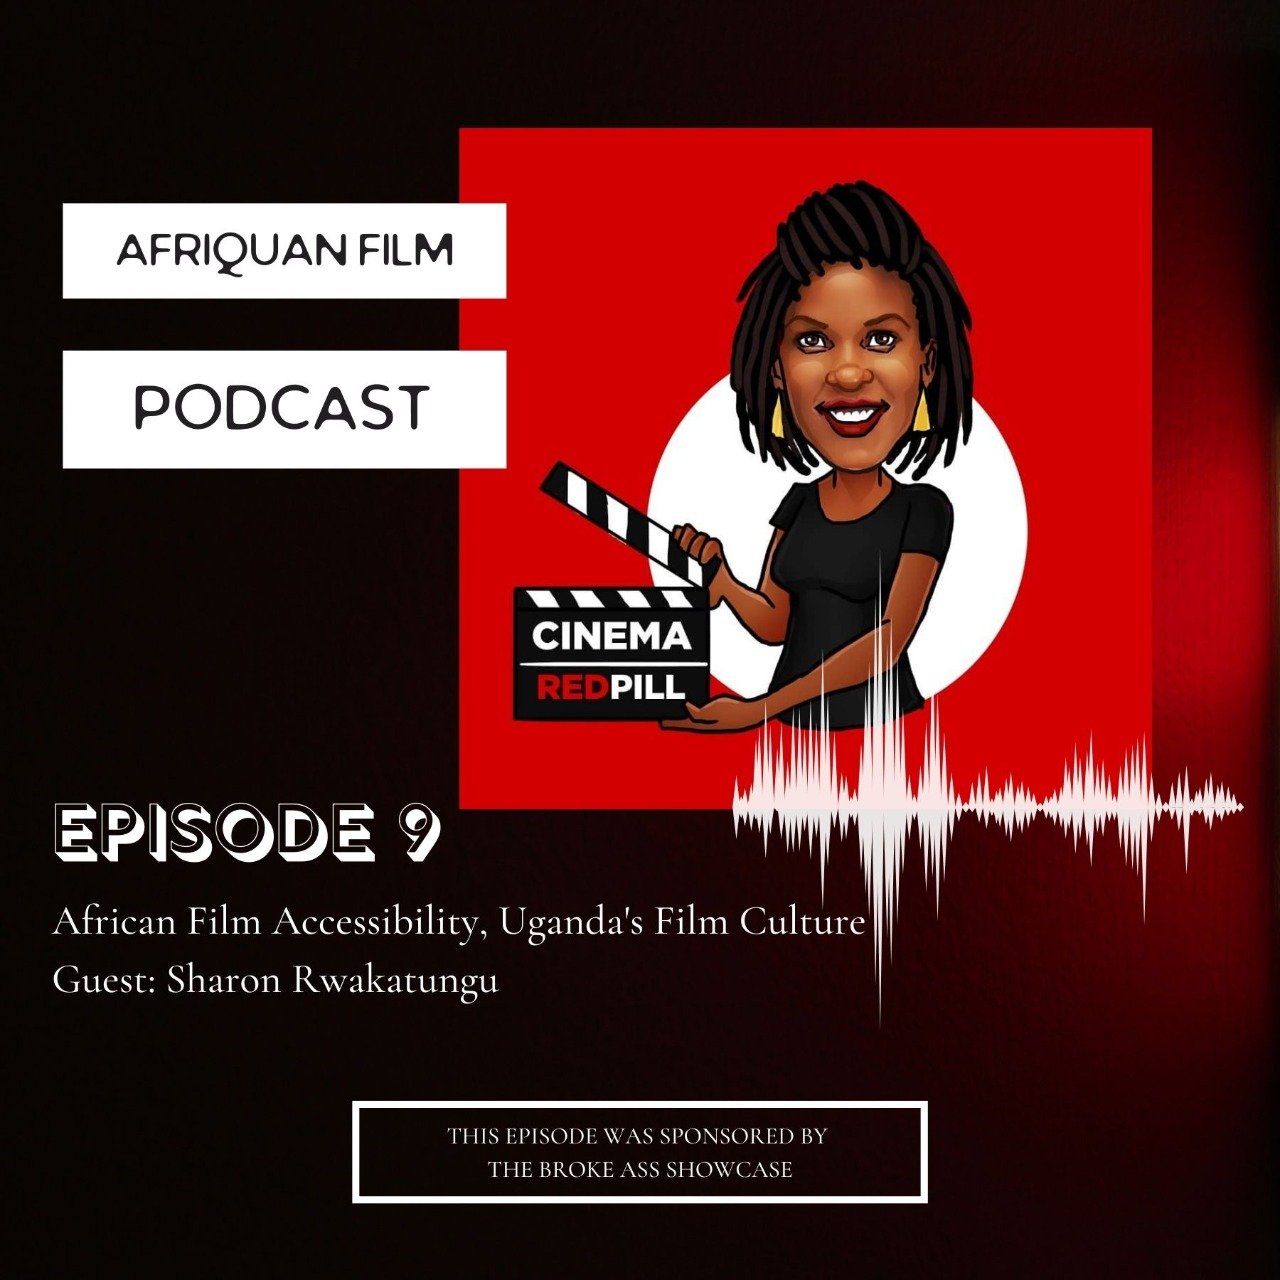 Afriquan Film Podcast S1E9 – Sharon Rwakatungu